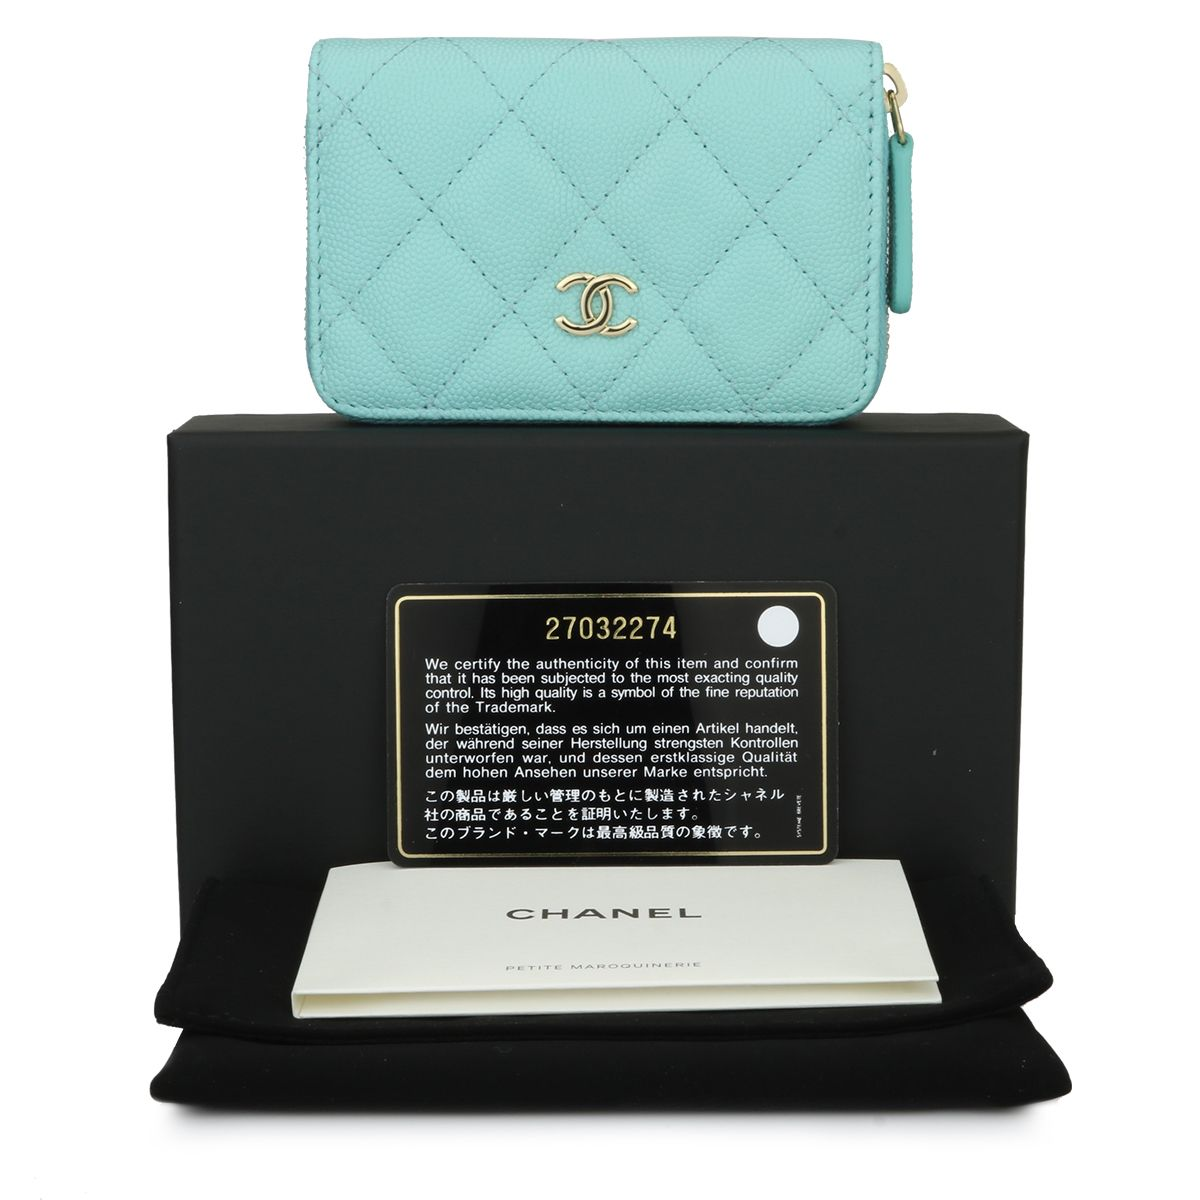 21d266d5762b CHANEL Small Coin Purse Tiffany Blue Caviar Light Gold Hardware 2018 - BoutiQi  Bags